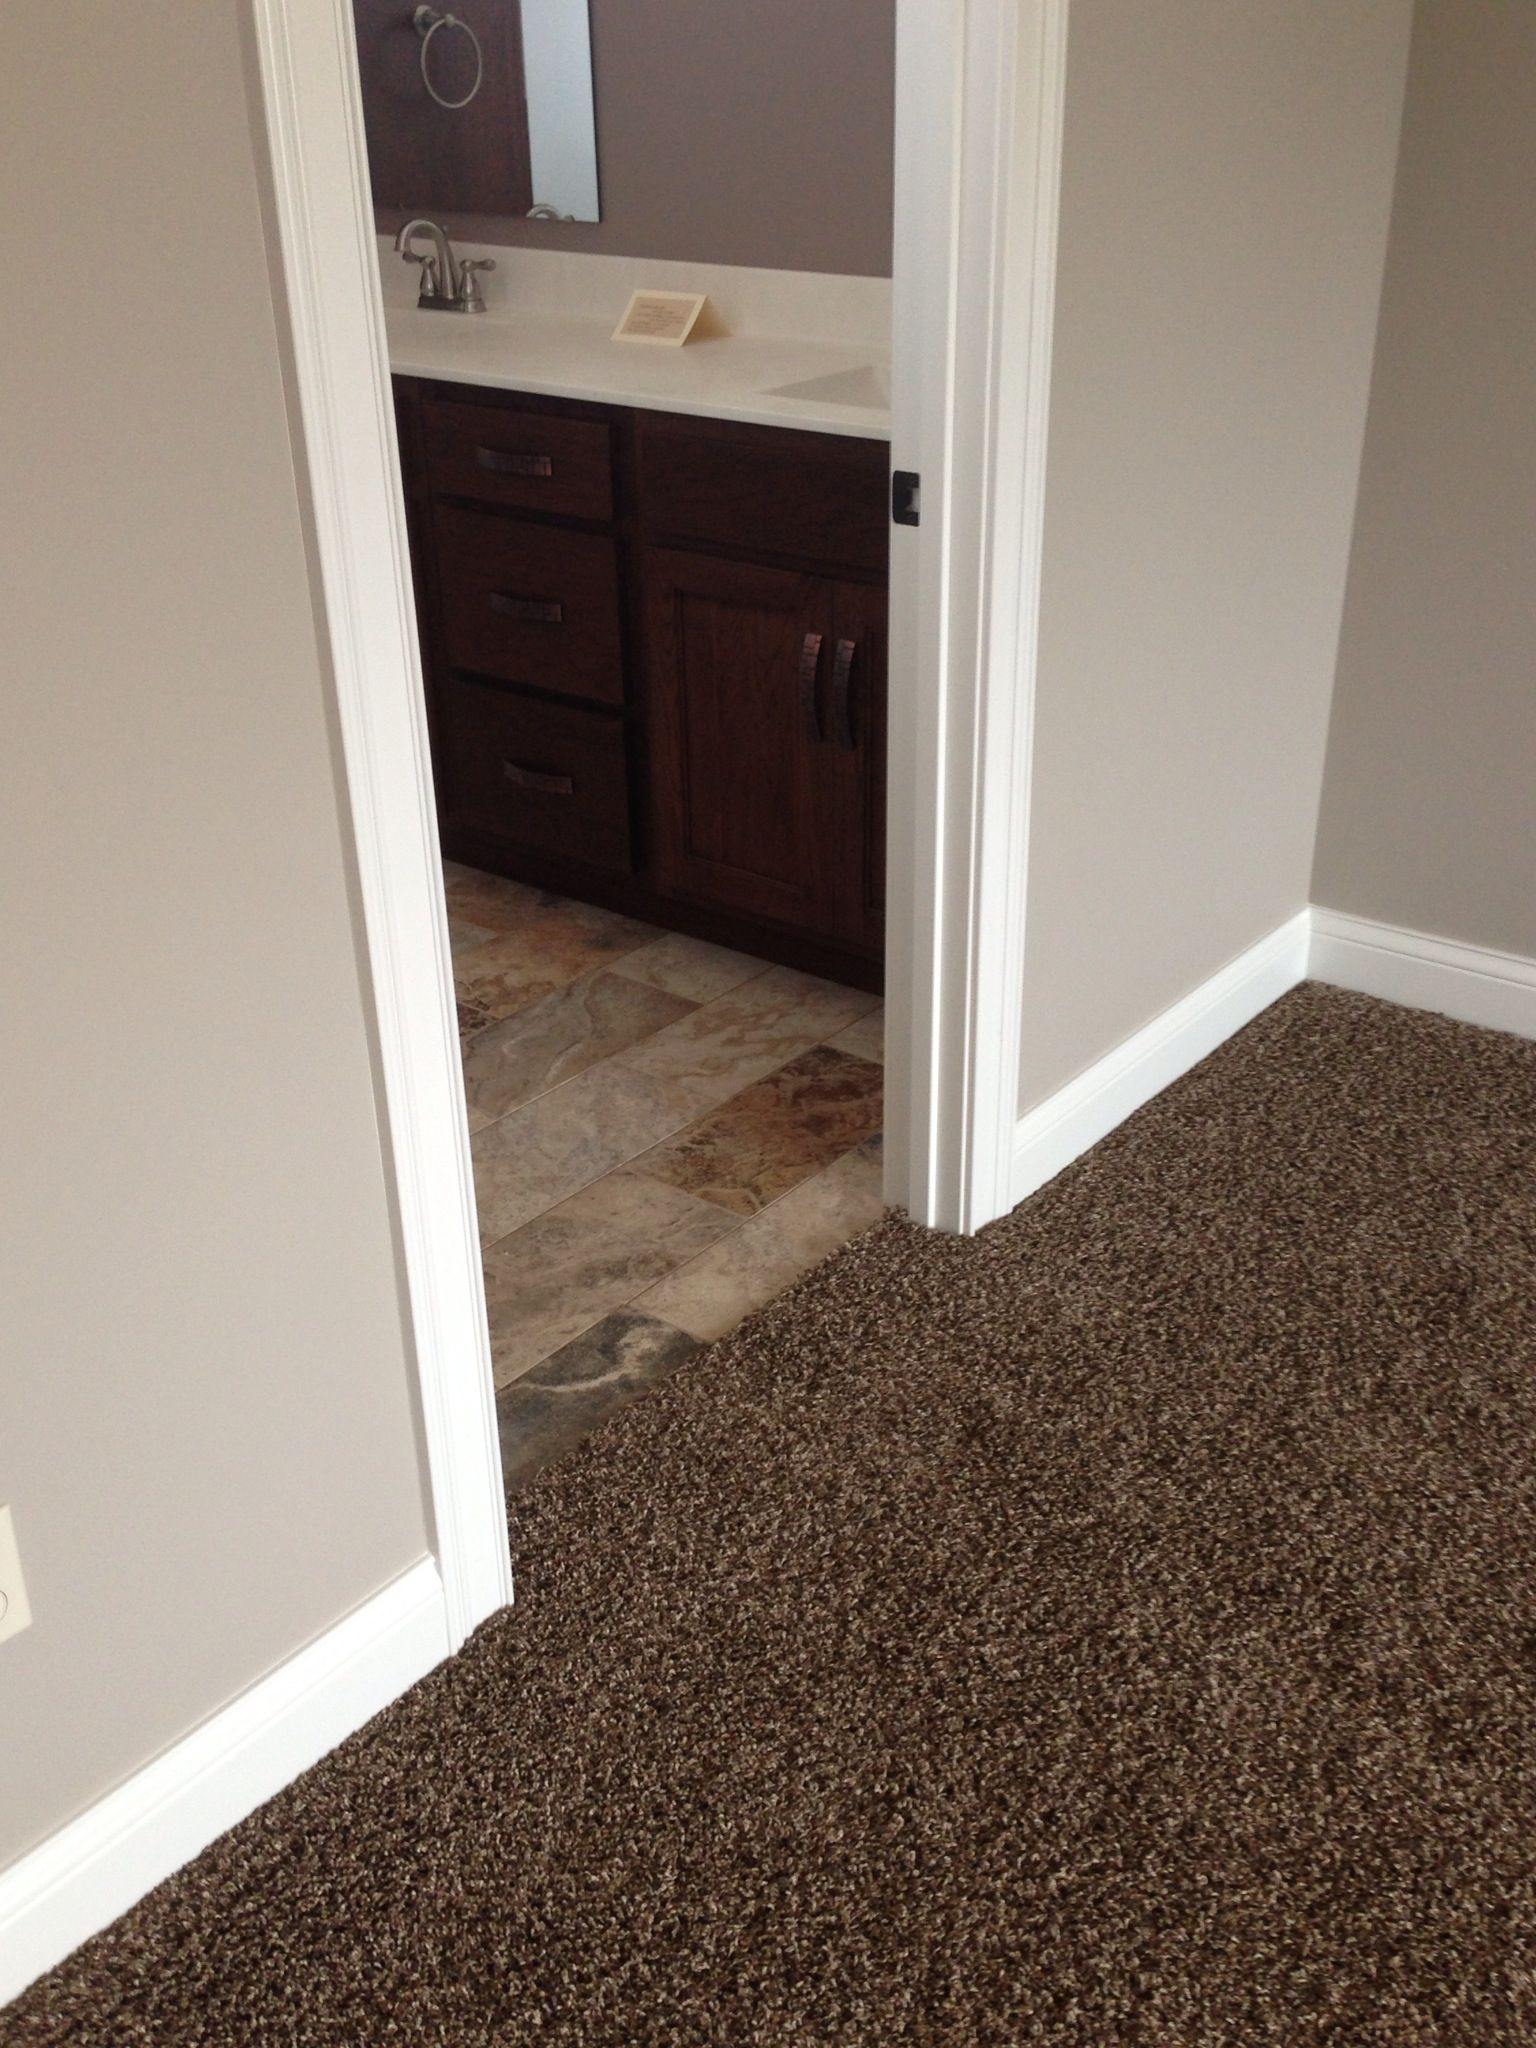 Like Carpet Looks Much Darker In This Pic And Tile Colors With The Dark Wood Future House